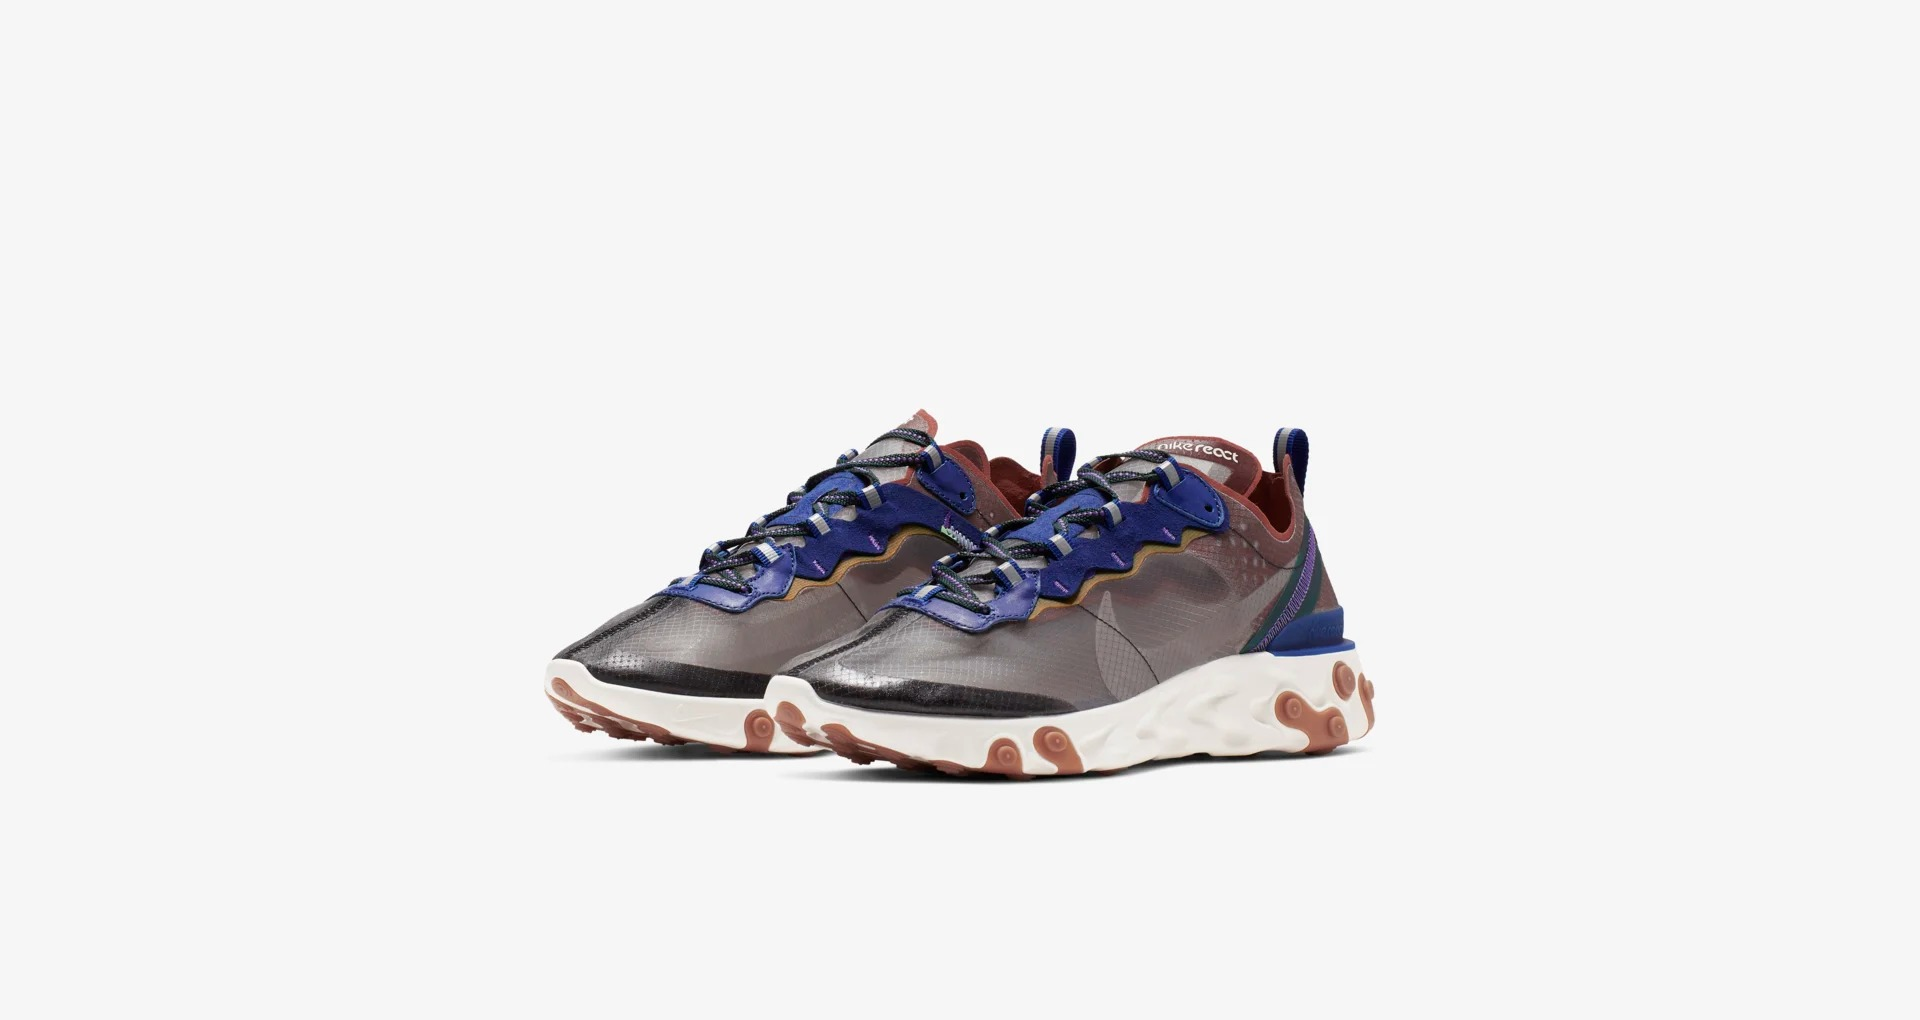 AQ1090 200 Nike React Element 87 Dusty Peach 6